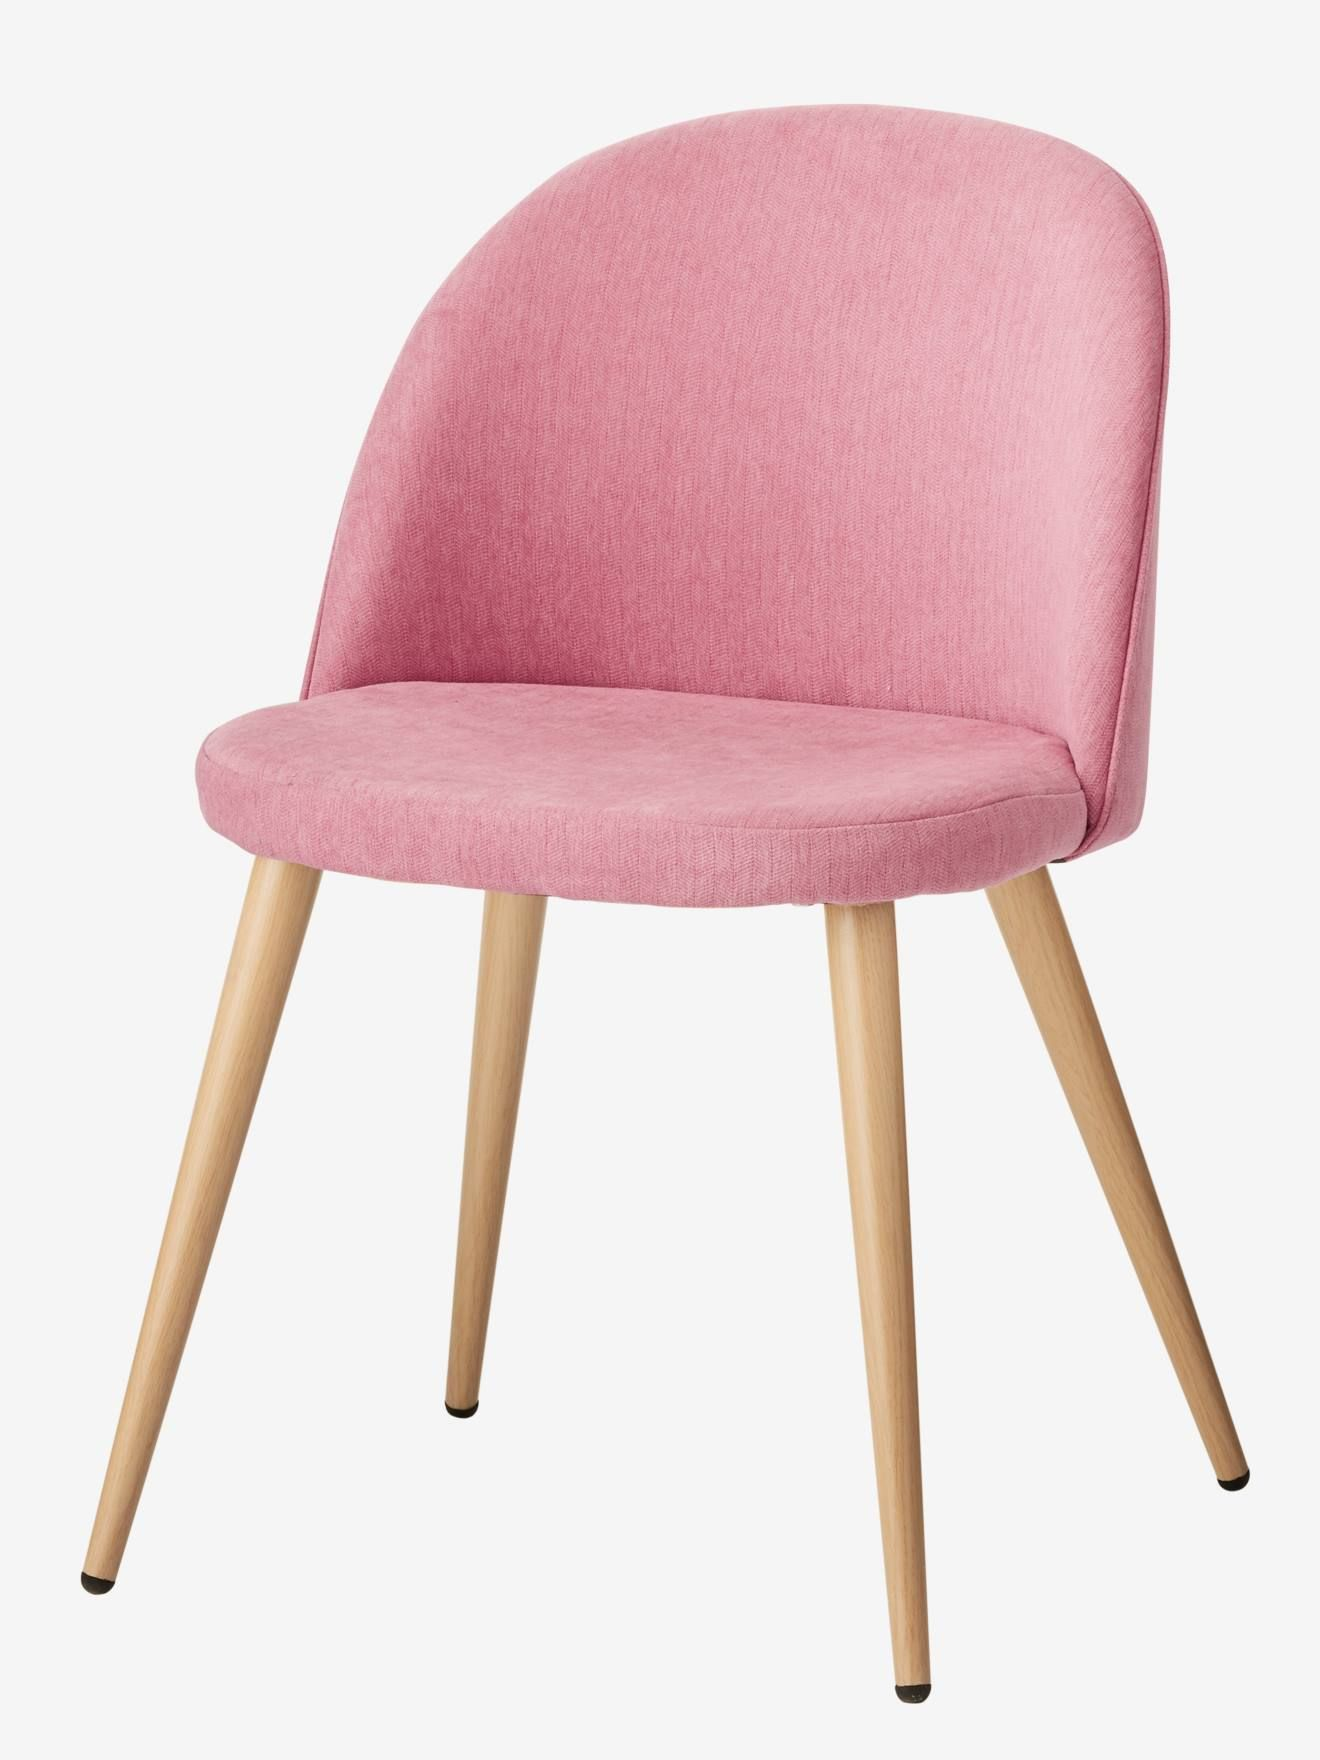 De Rose Primaire Chaise Bureau Bubble In 2019 tQrhdCxs